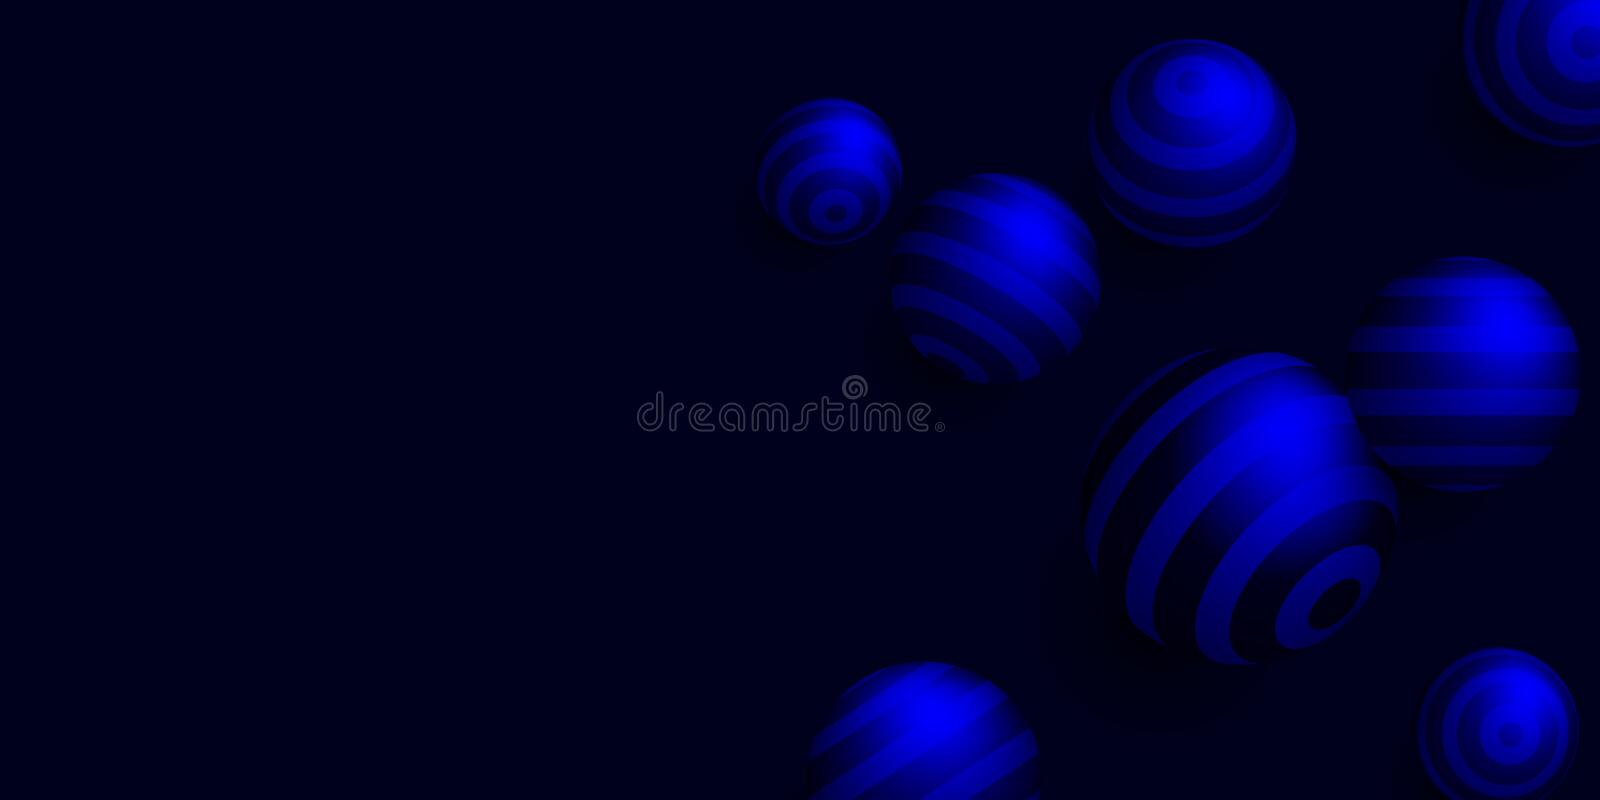 Black background with blue striped 3d balls. vector illustration